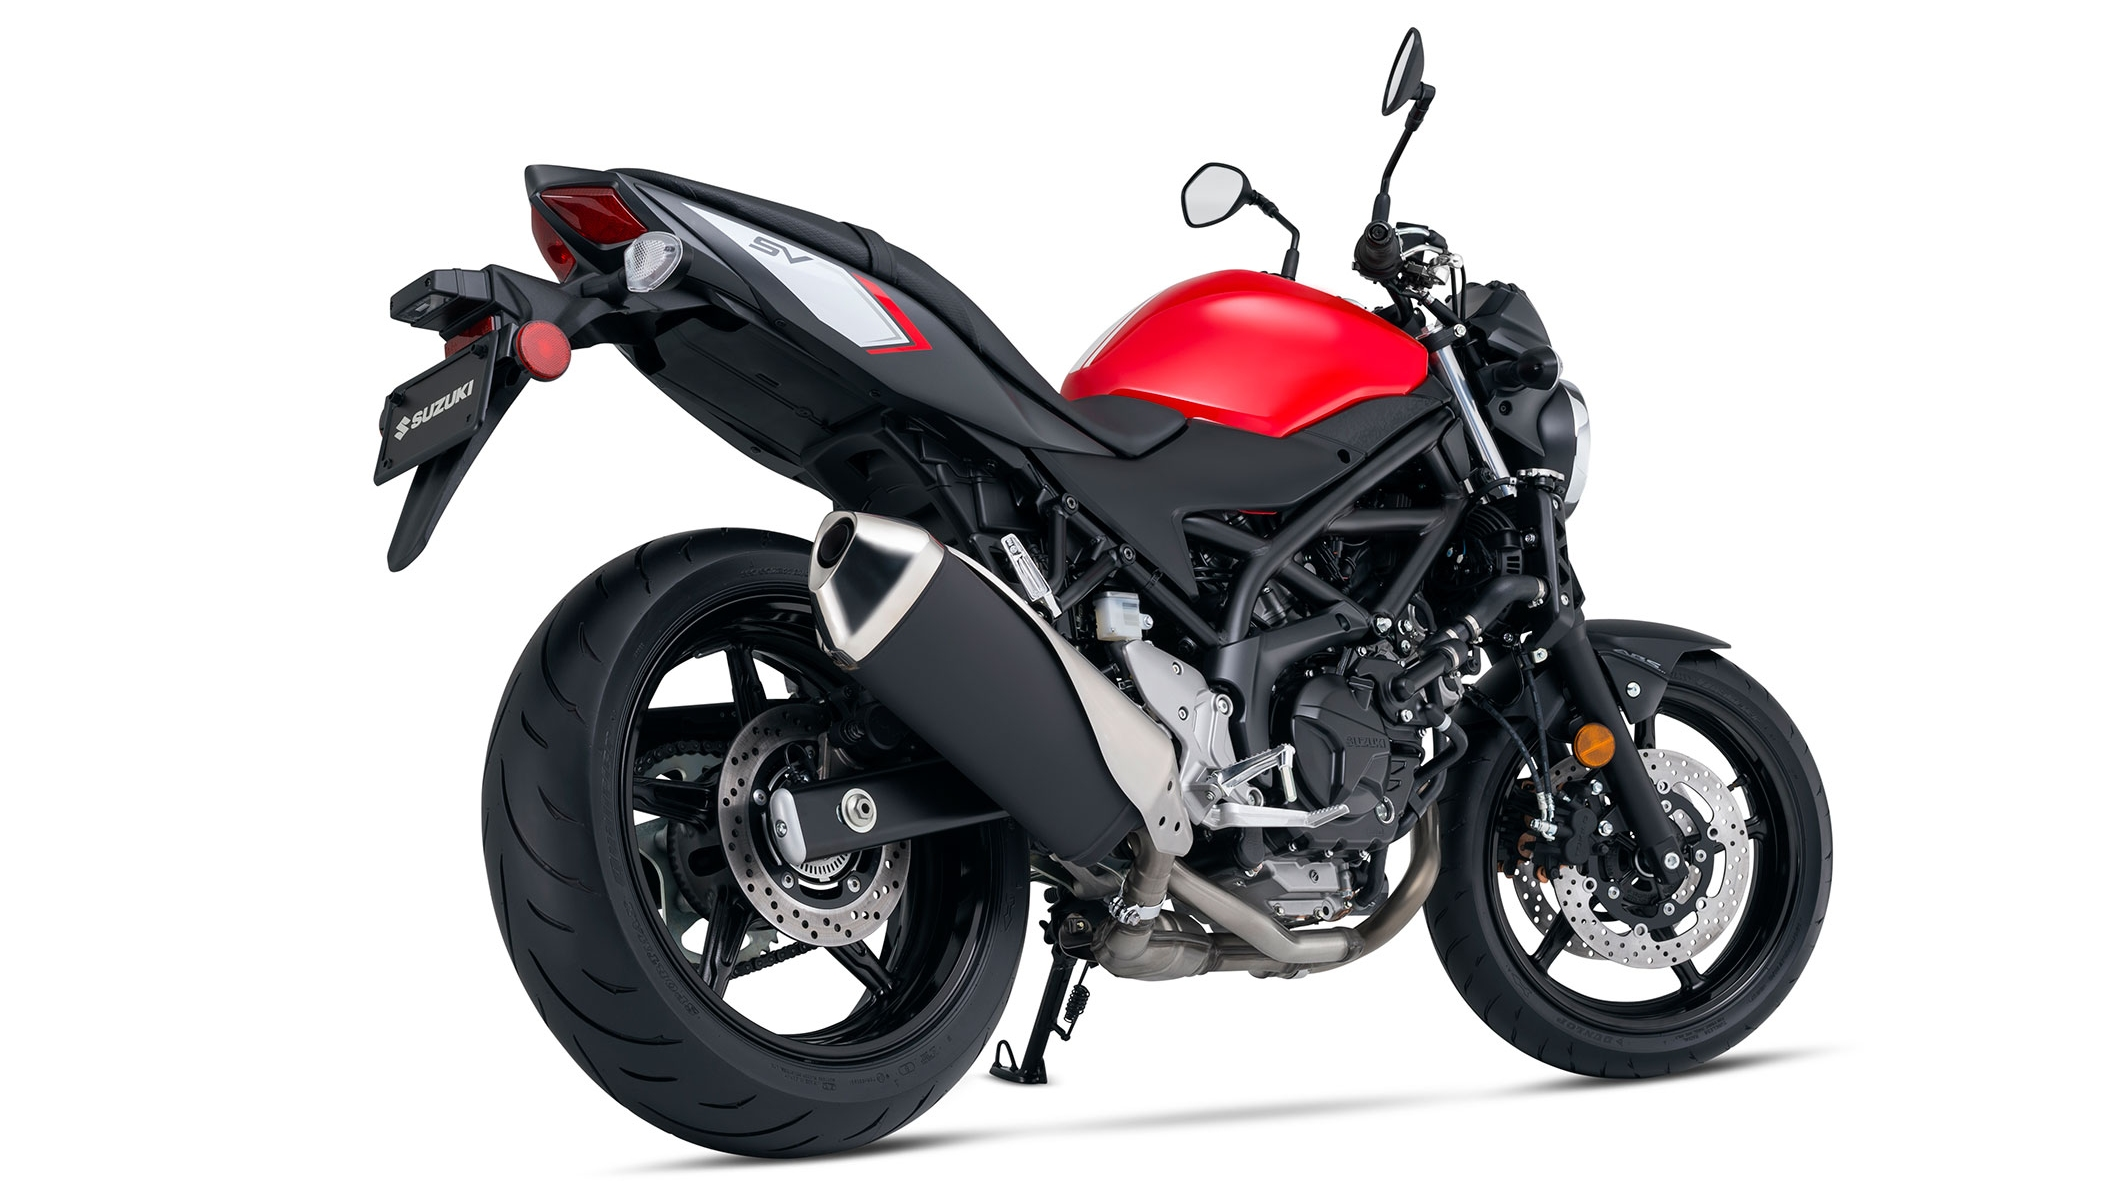 2017 suzuki sv650 abs review top speed. Black Bedroom Furniture Sets. Home Design Ideas